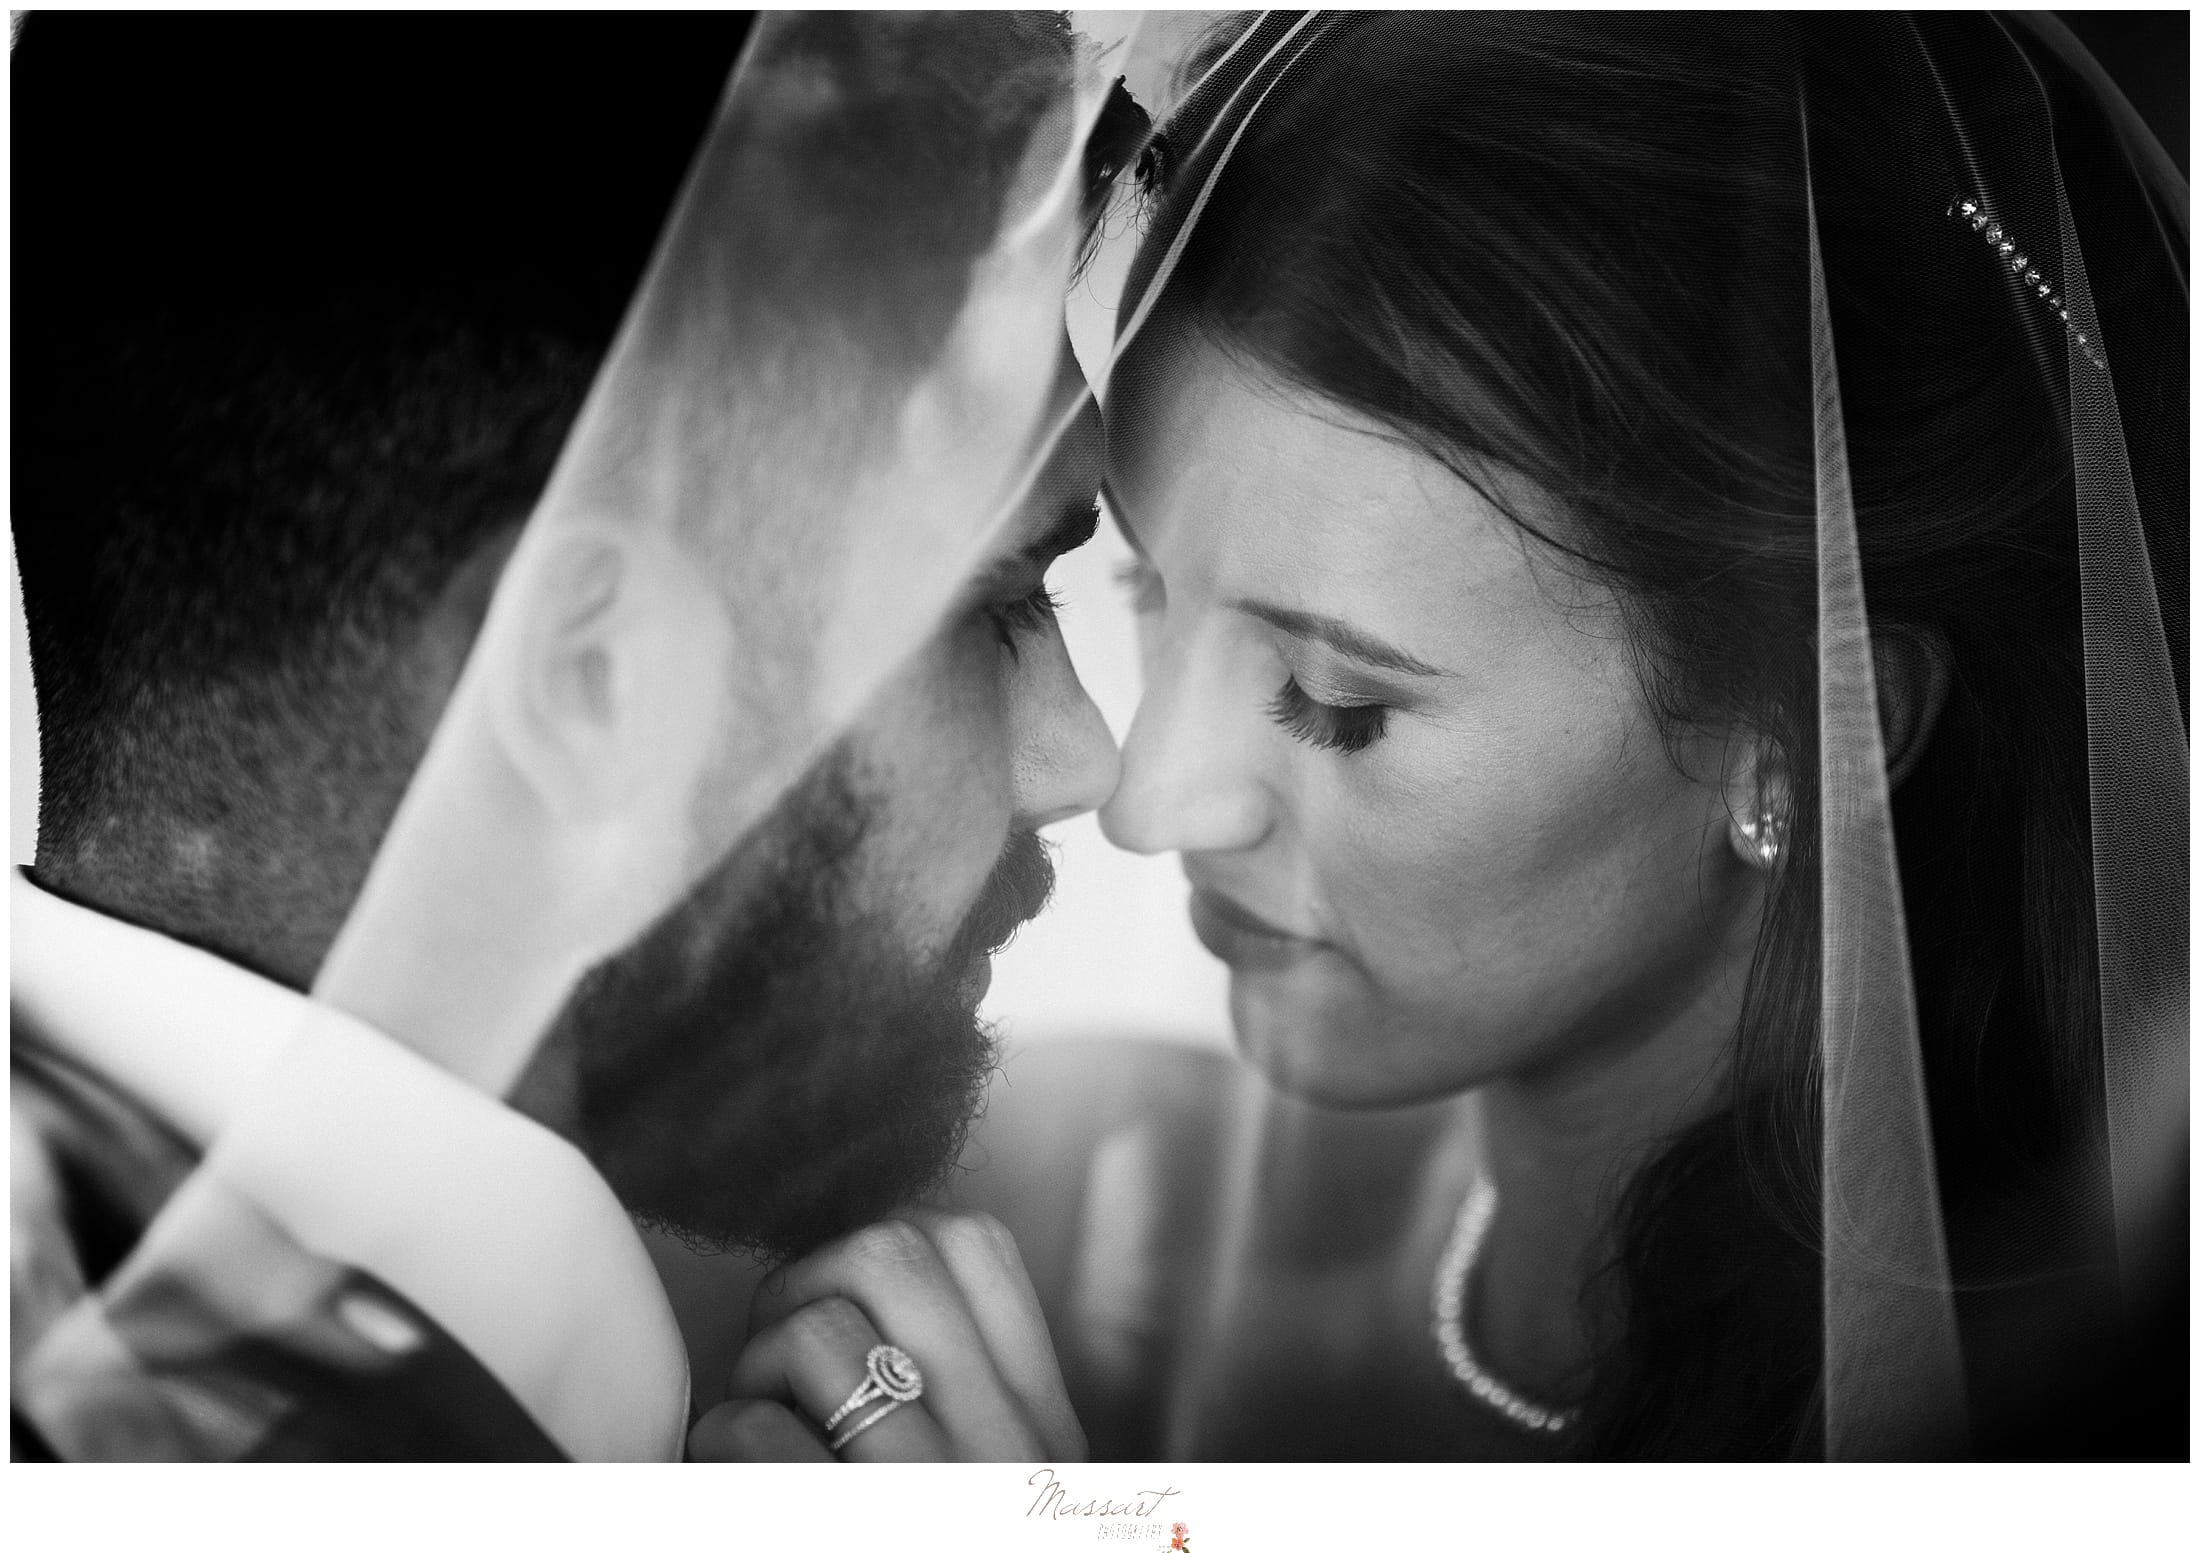 Wedding photographers from RI at Massart Photography photo of bride and groom at kirkbrae country club